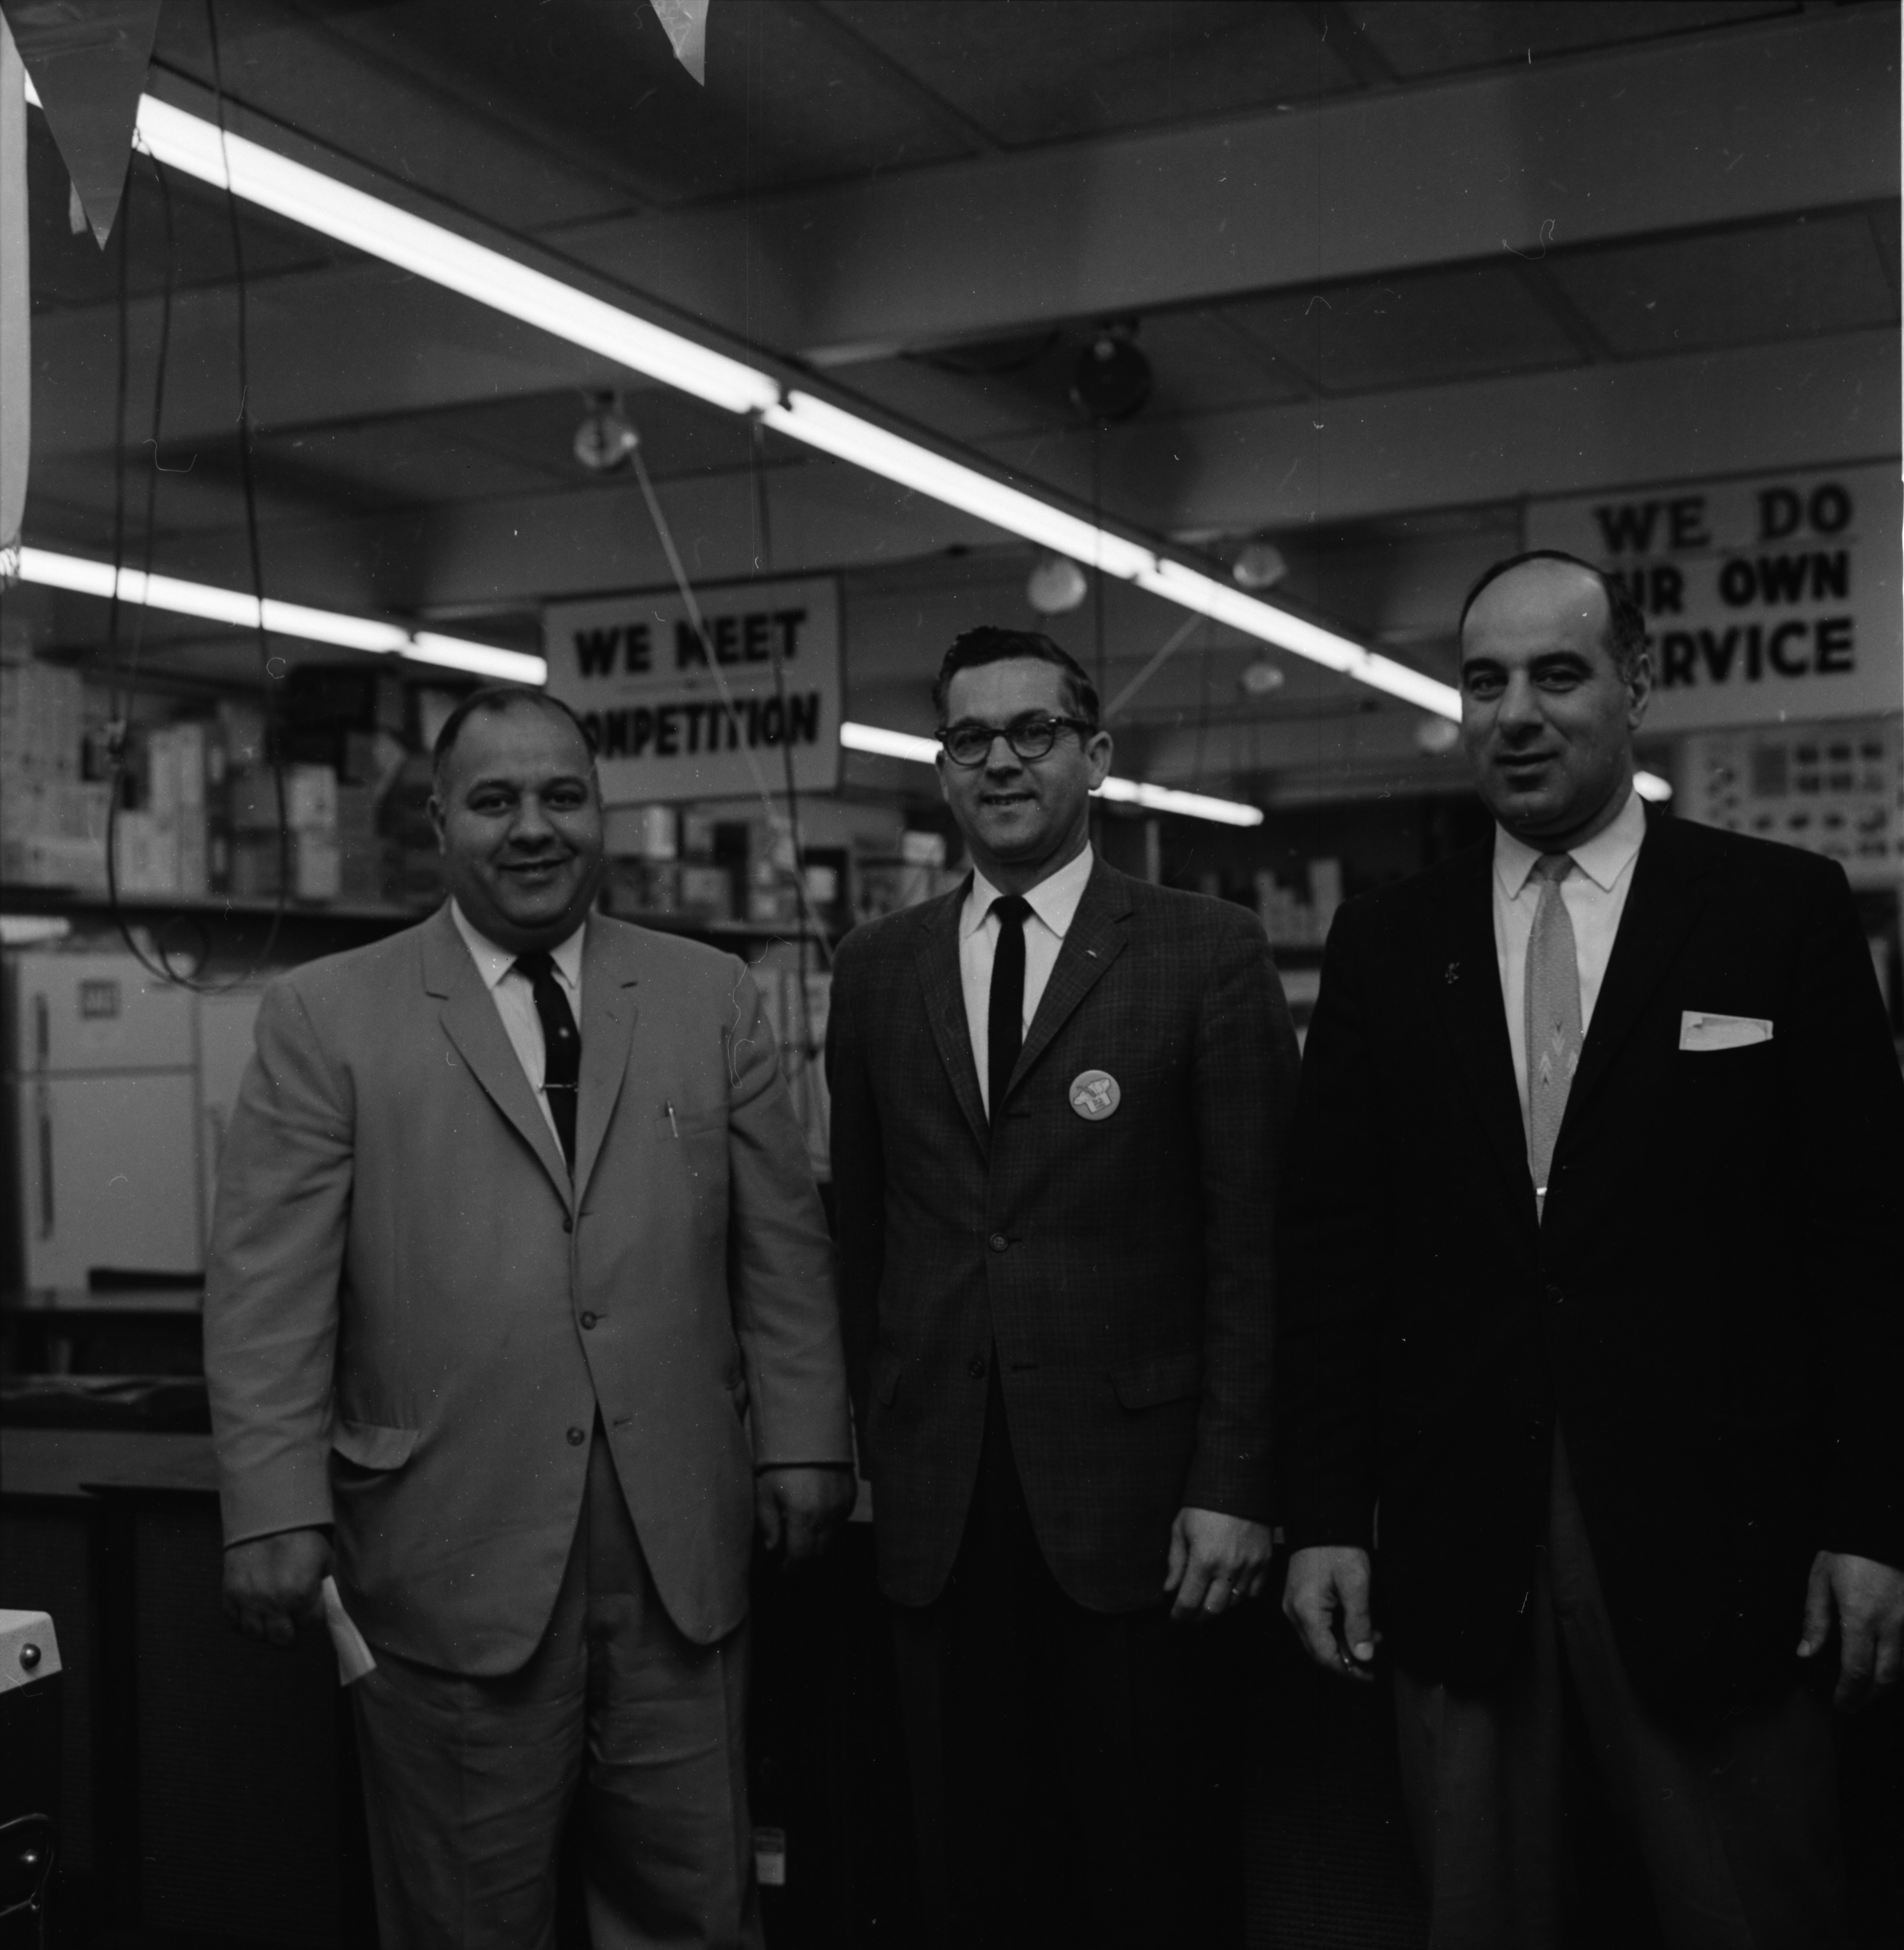 Co-owners George Simon, Joe Simon, and Willard Murrell of Home Appliance Mart of 2019 W. Stadium Blvd., May 1963 image